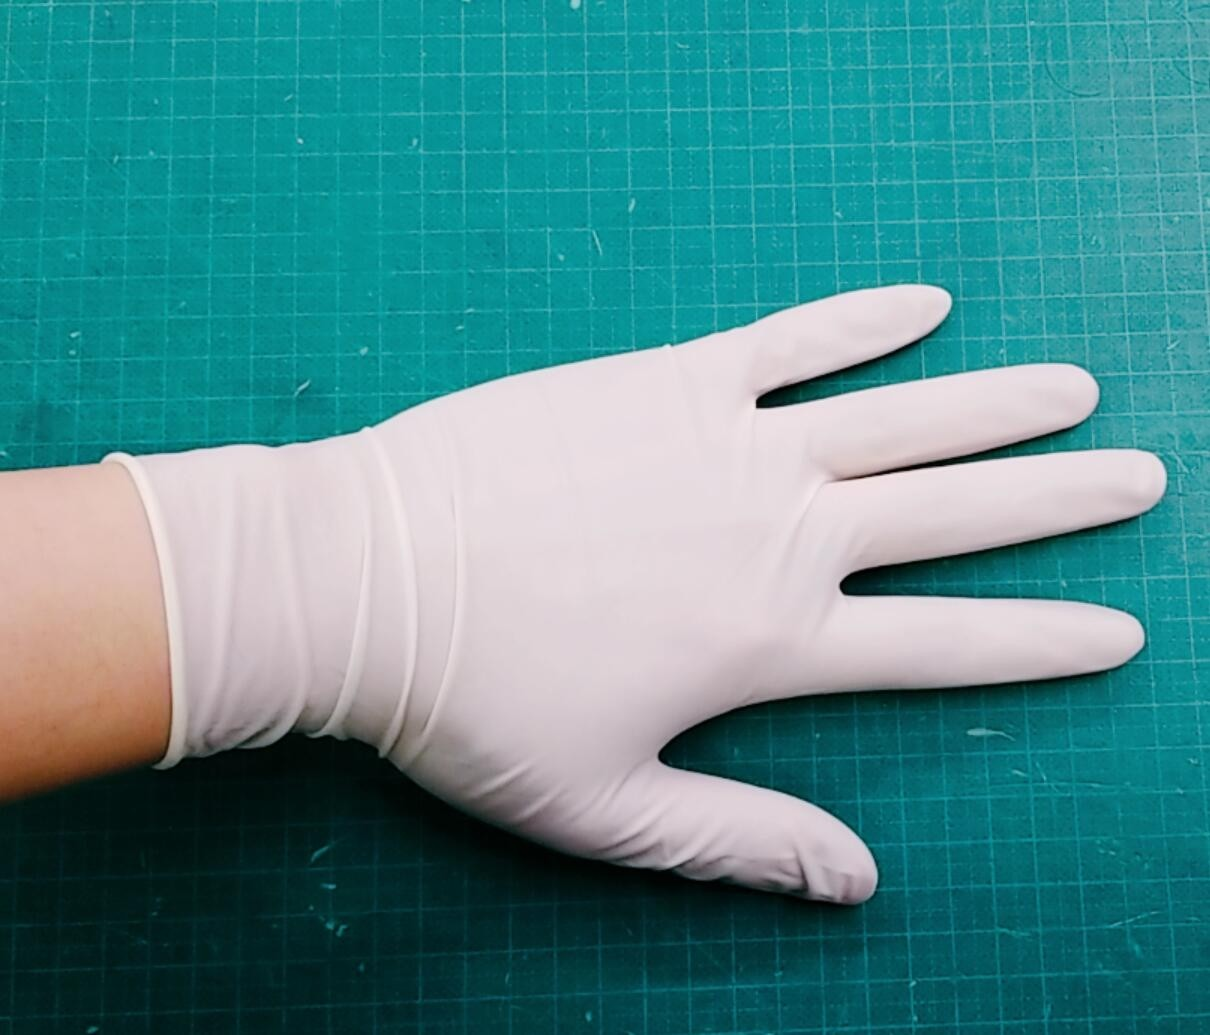 LATEX - WHITE MEDICAL EXAMINATION GLOVE (CLEANING, FOOD PROCEDDING, MEDICAL EXAMINATION)